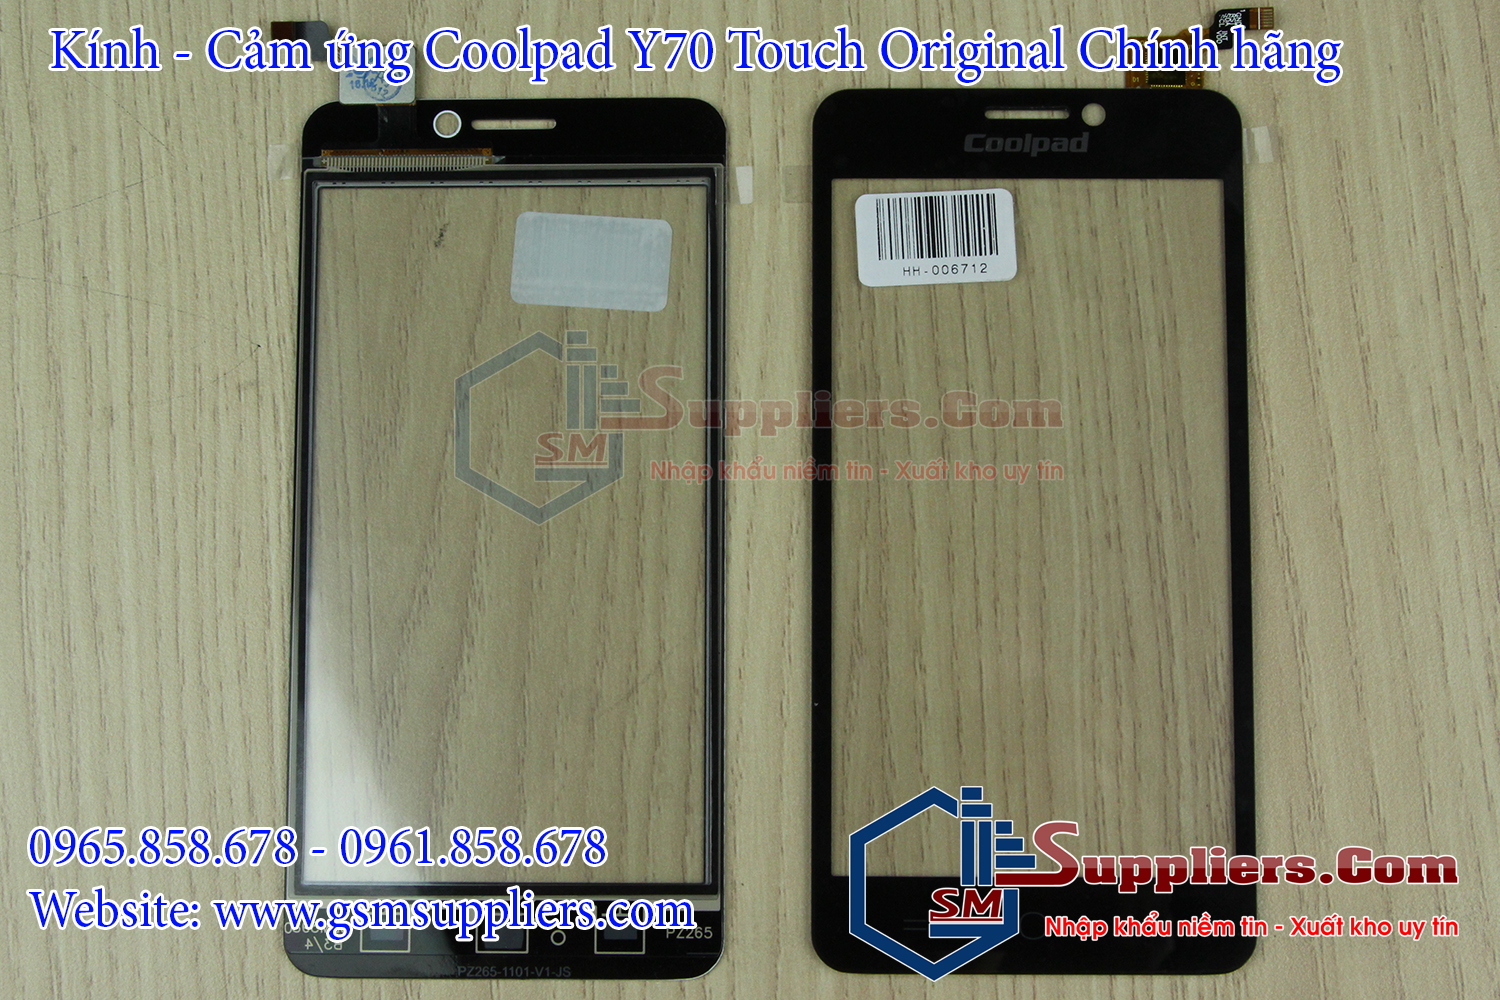 cam ung coolpad y70 hang chinh hang gia re tai ha noi 6